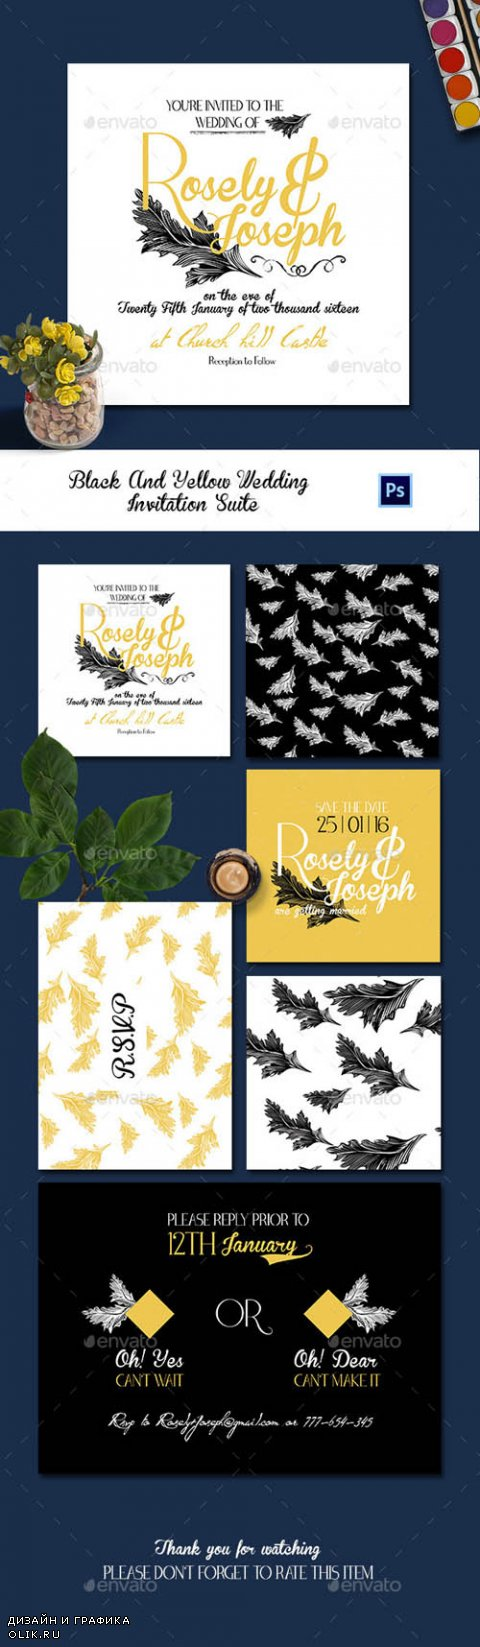 Black And Yellow Wedding Invitation Suite 13667399